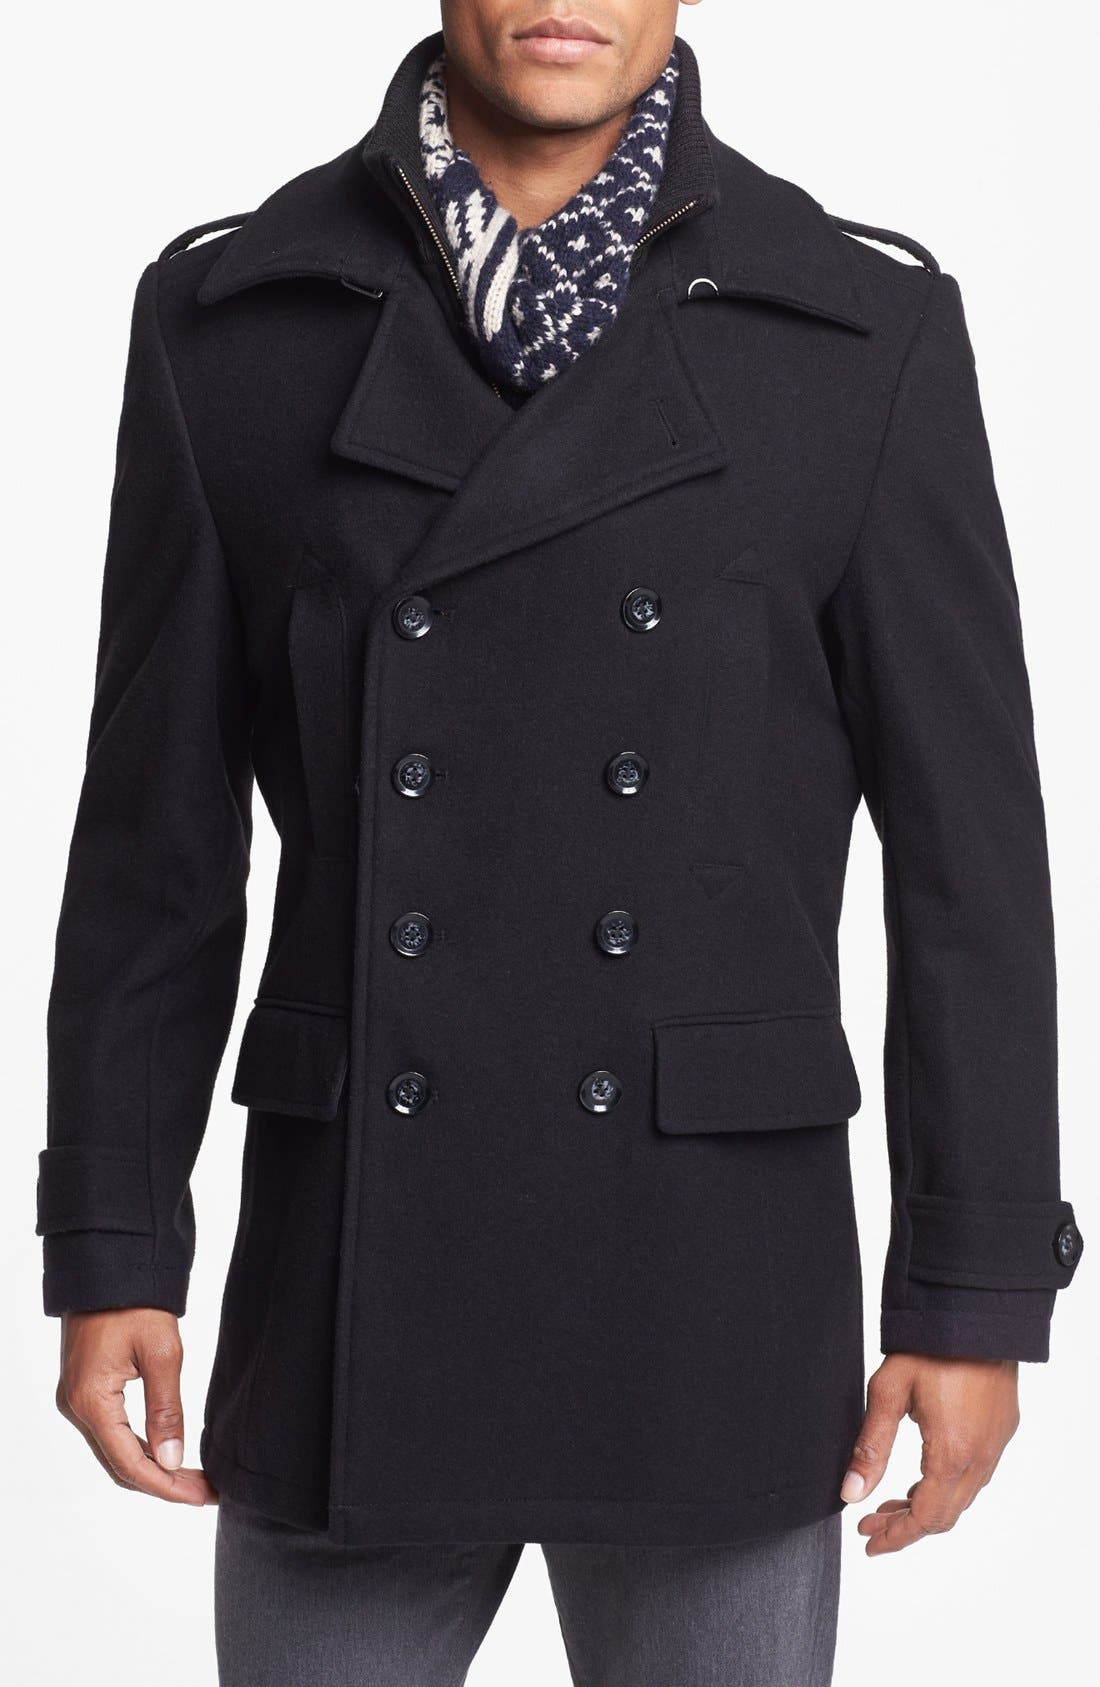 Main Image - 7 Diamonds 'Glasgow' Regular Fit Double Breasted Peacoat